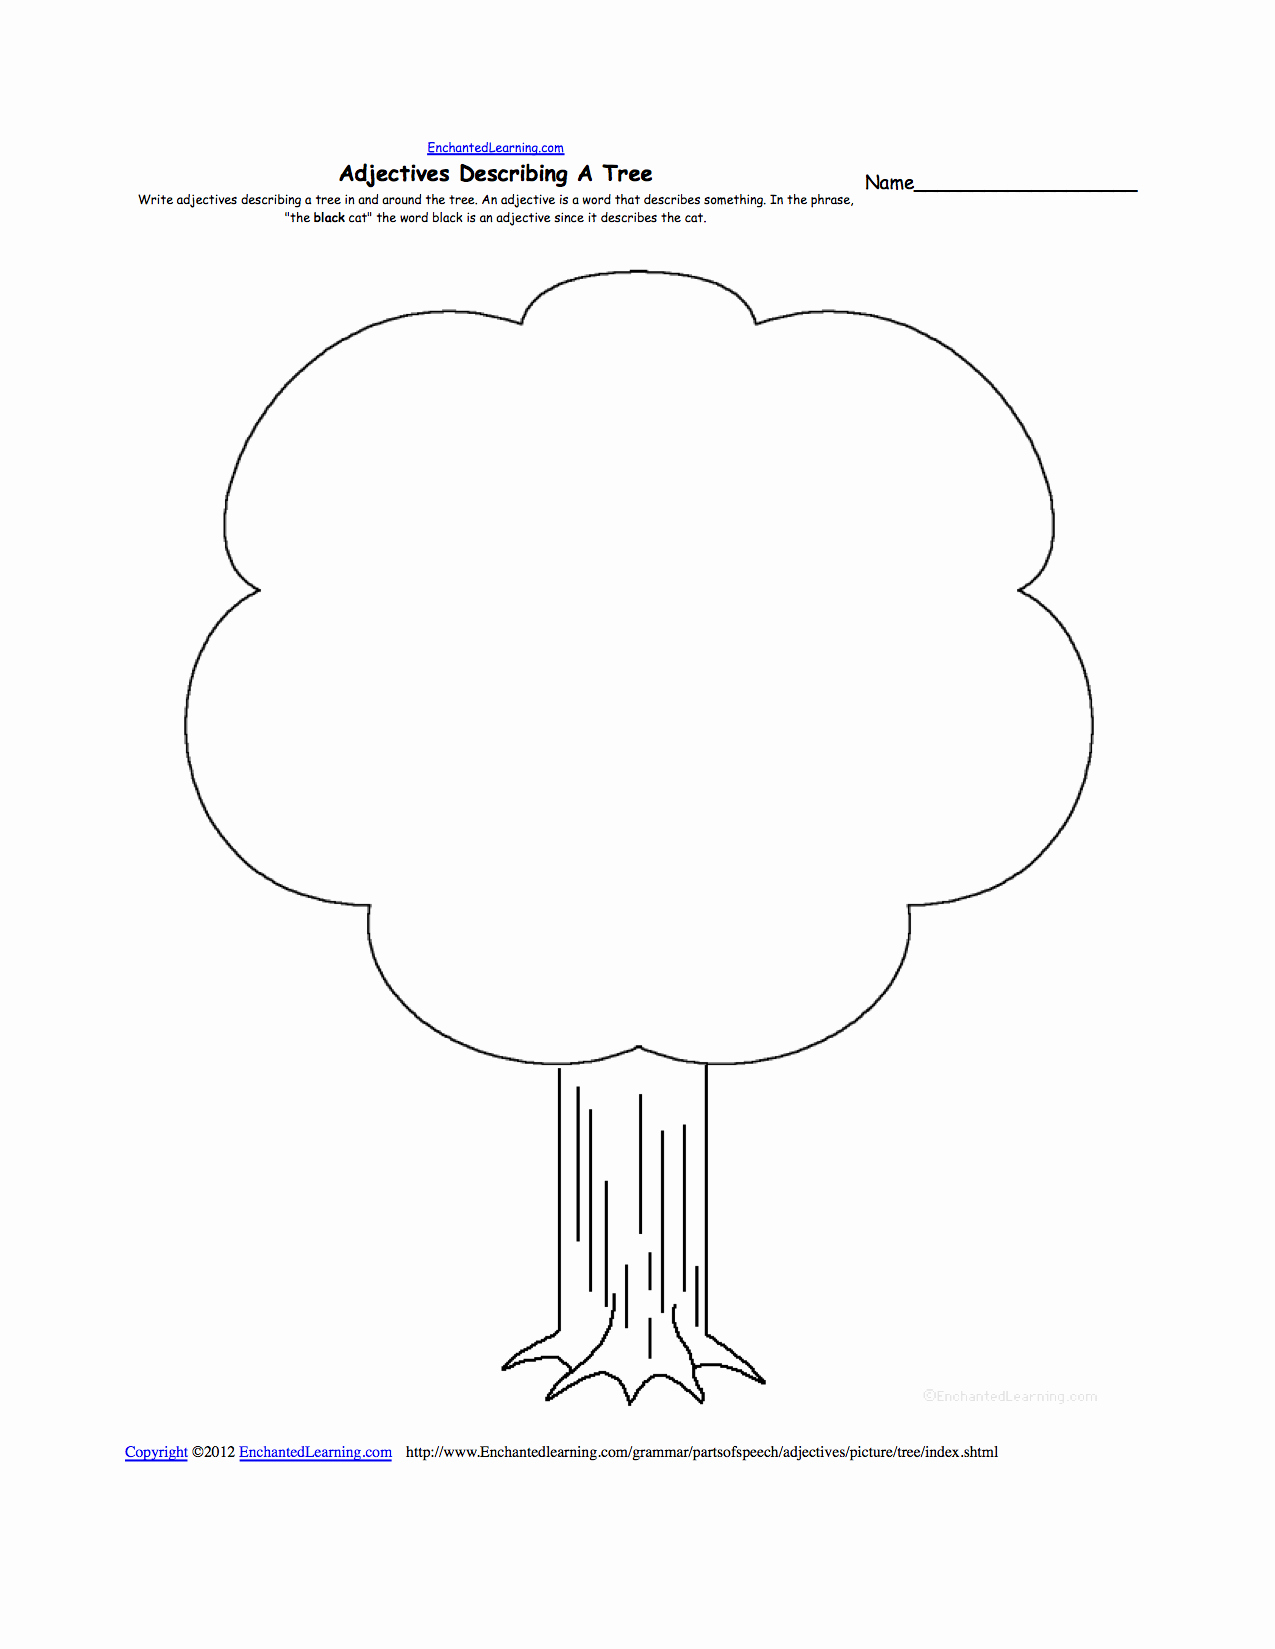 Family Tree Worksheet Pdf Unique Trees at Enchantedlearning